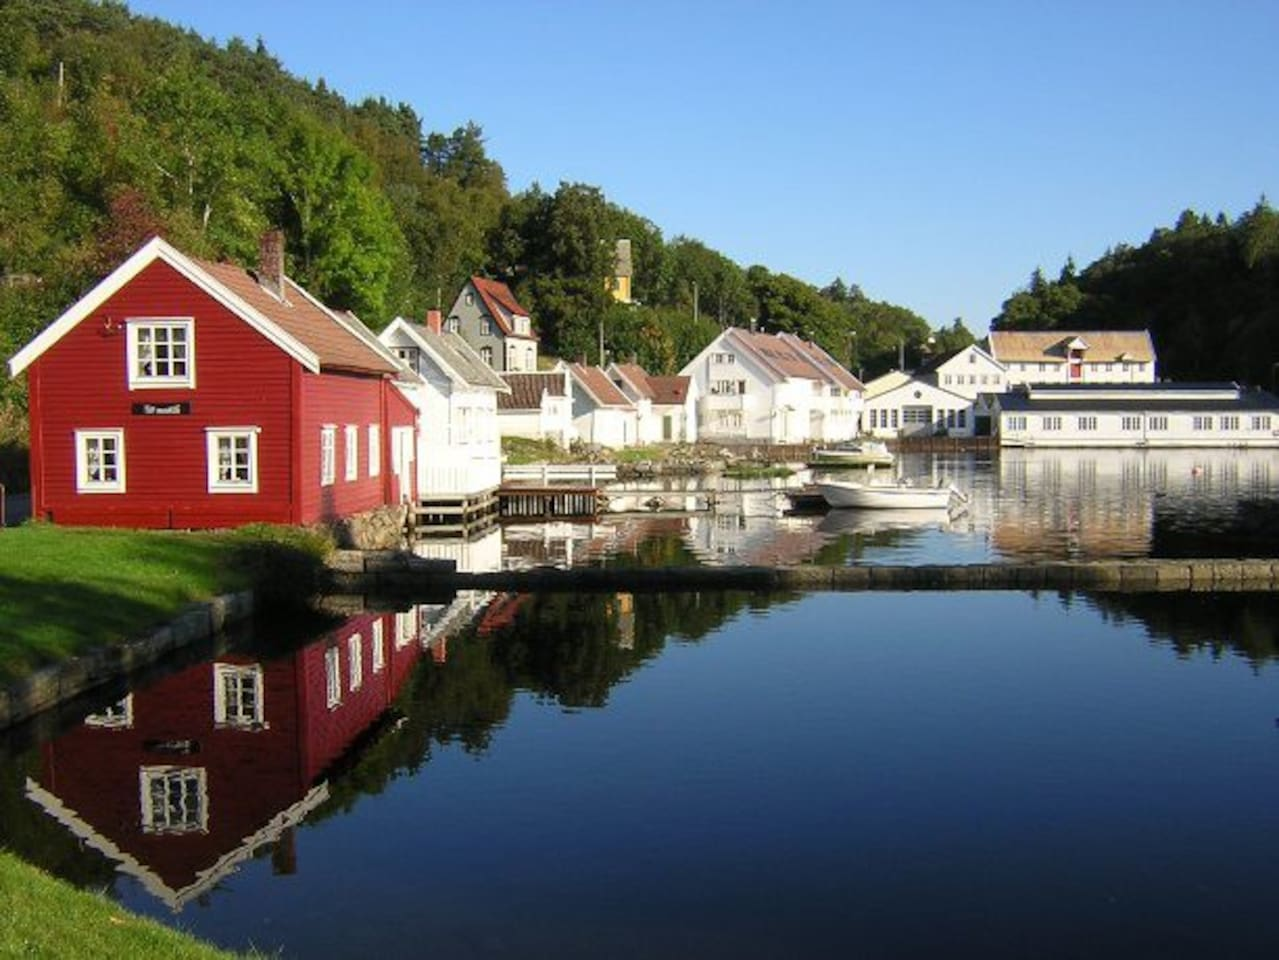 Strusshamn means Harbour, and this is the harbour, 200 meters from the apartment